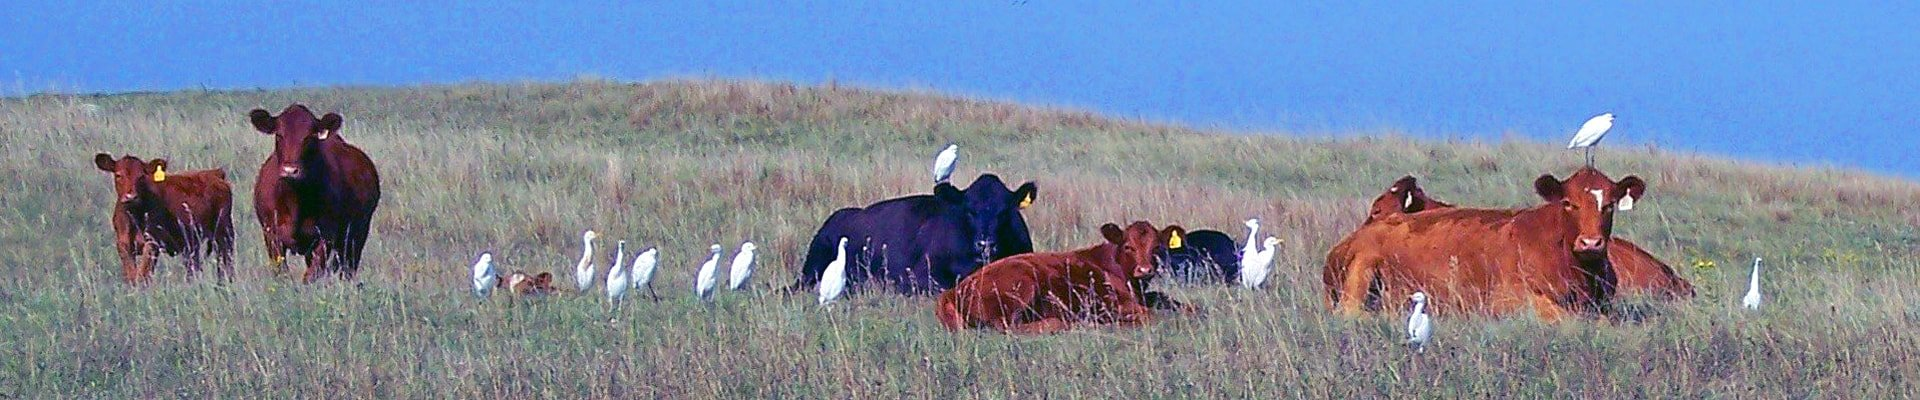 Birds Sitting on Cows in a Field